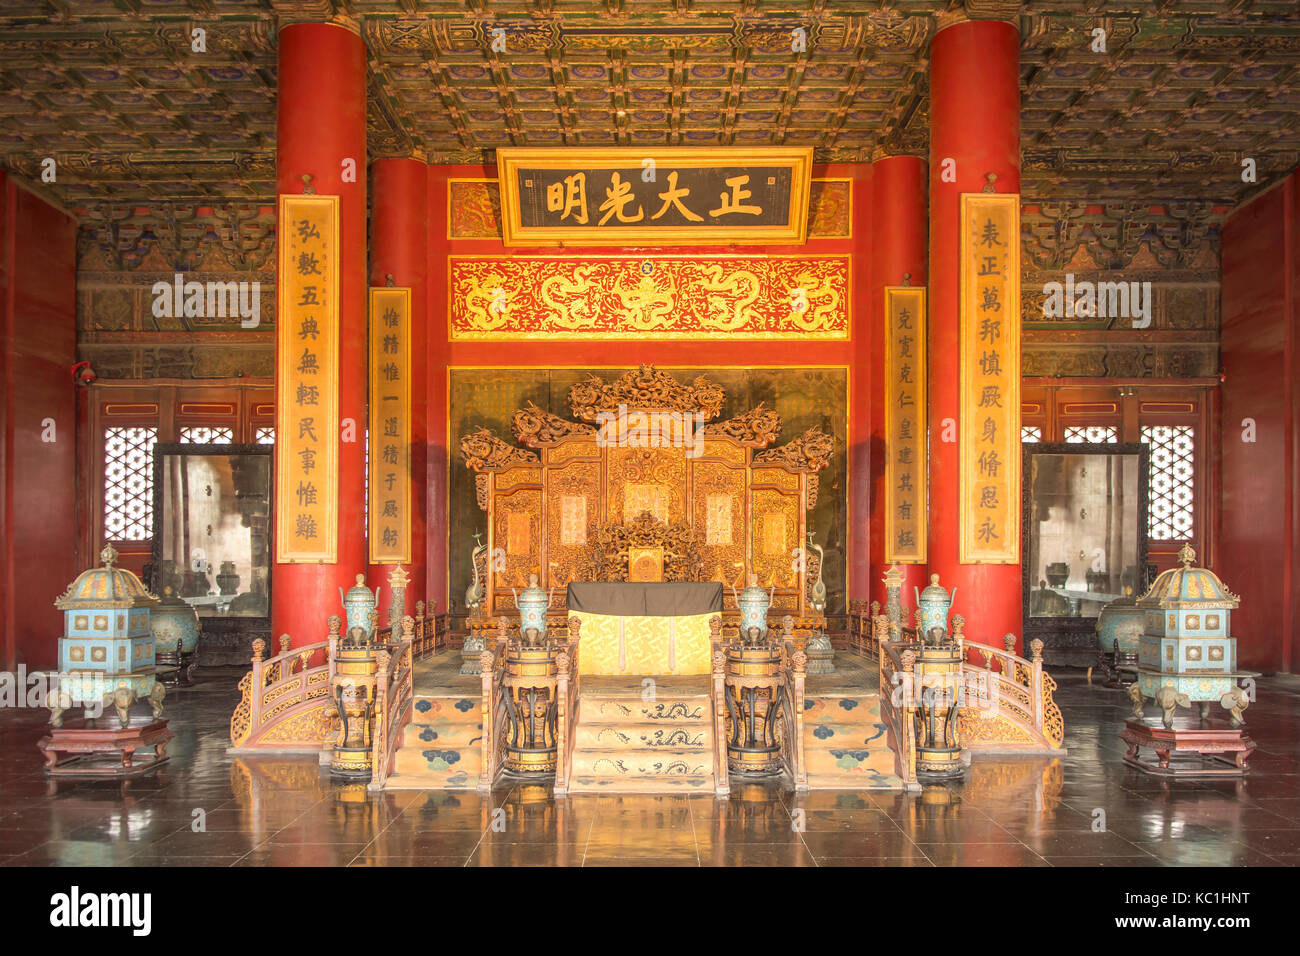 Inside Hall of Preserving Harmony in Forbidden City, Beijing, China - Stock Image